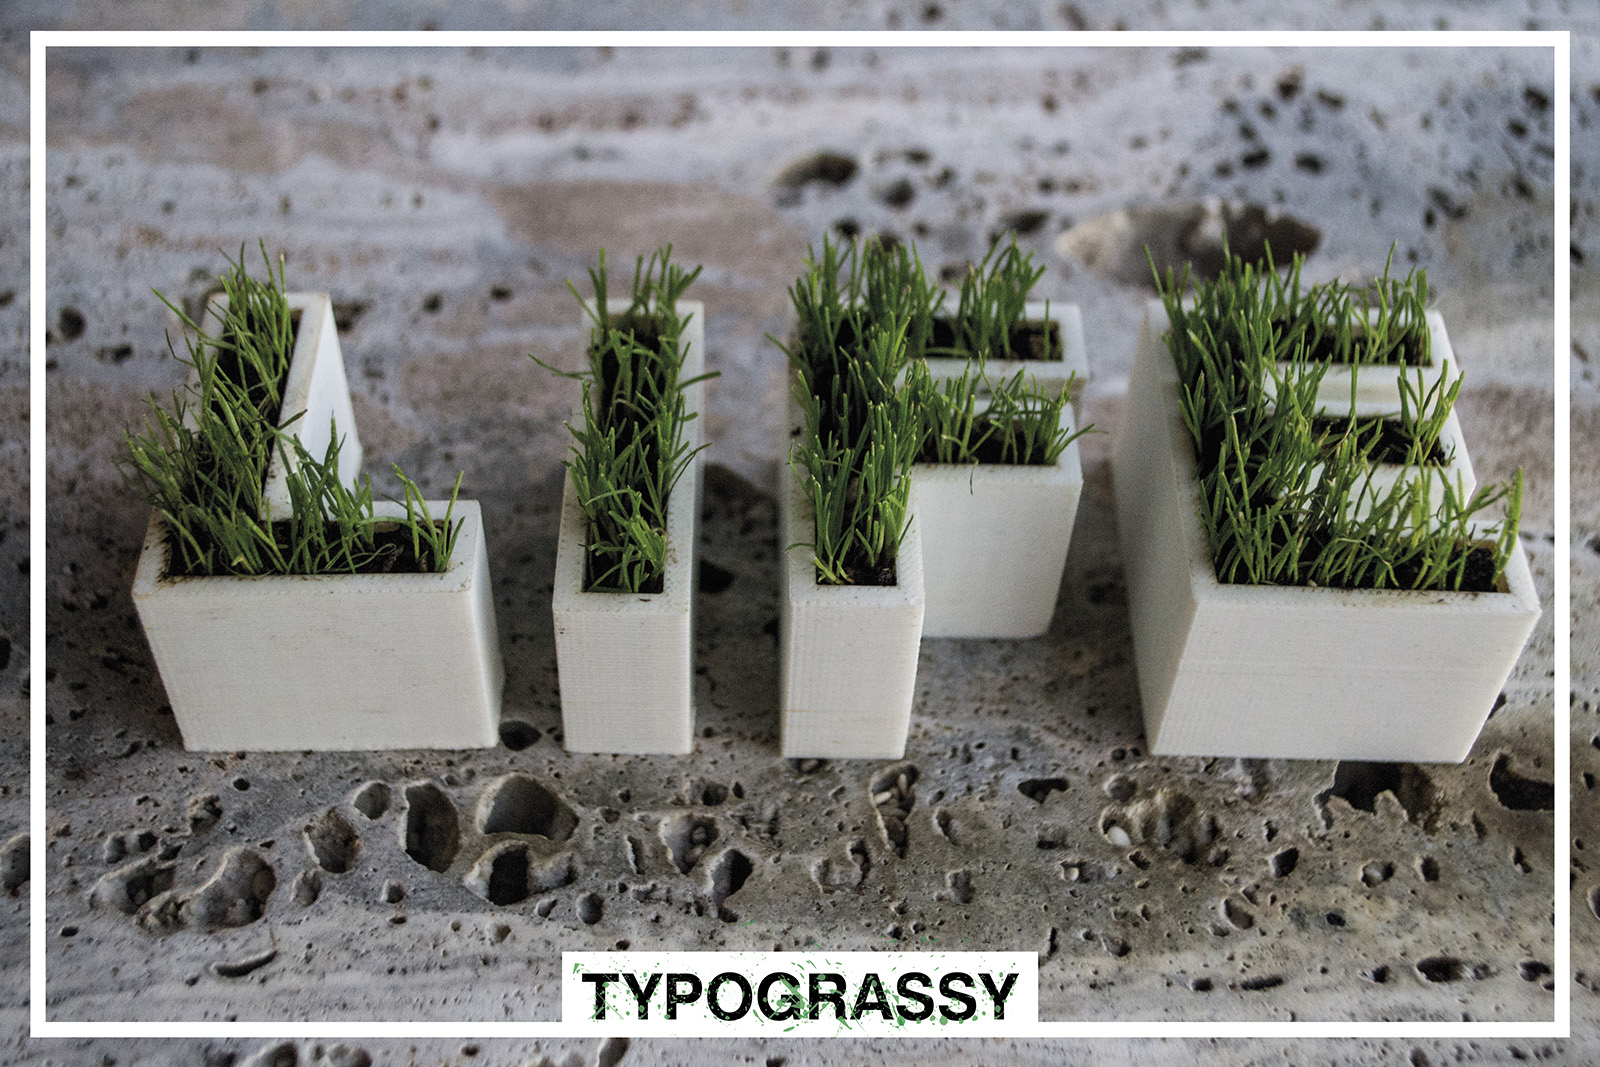 3D Printed letter_Typograssy_3d product_siemos yiannis_yianart.com